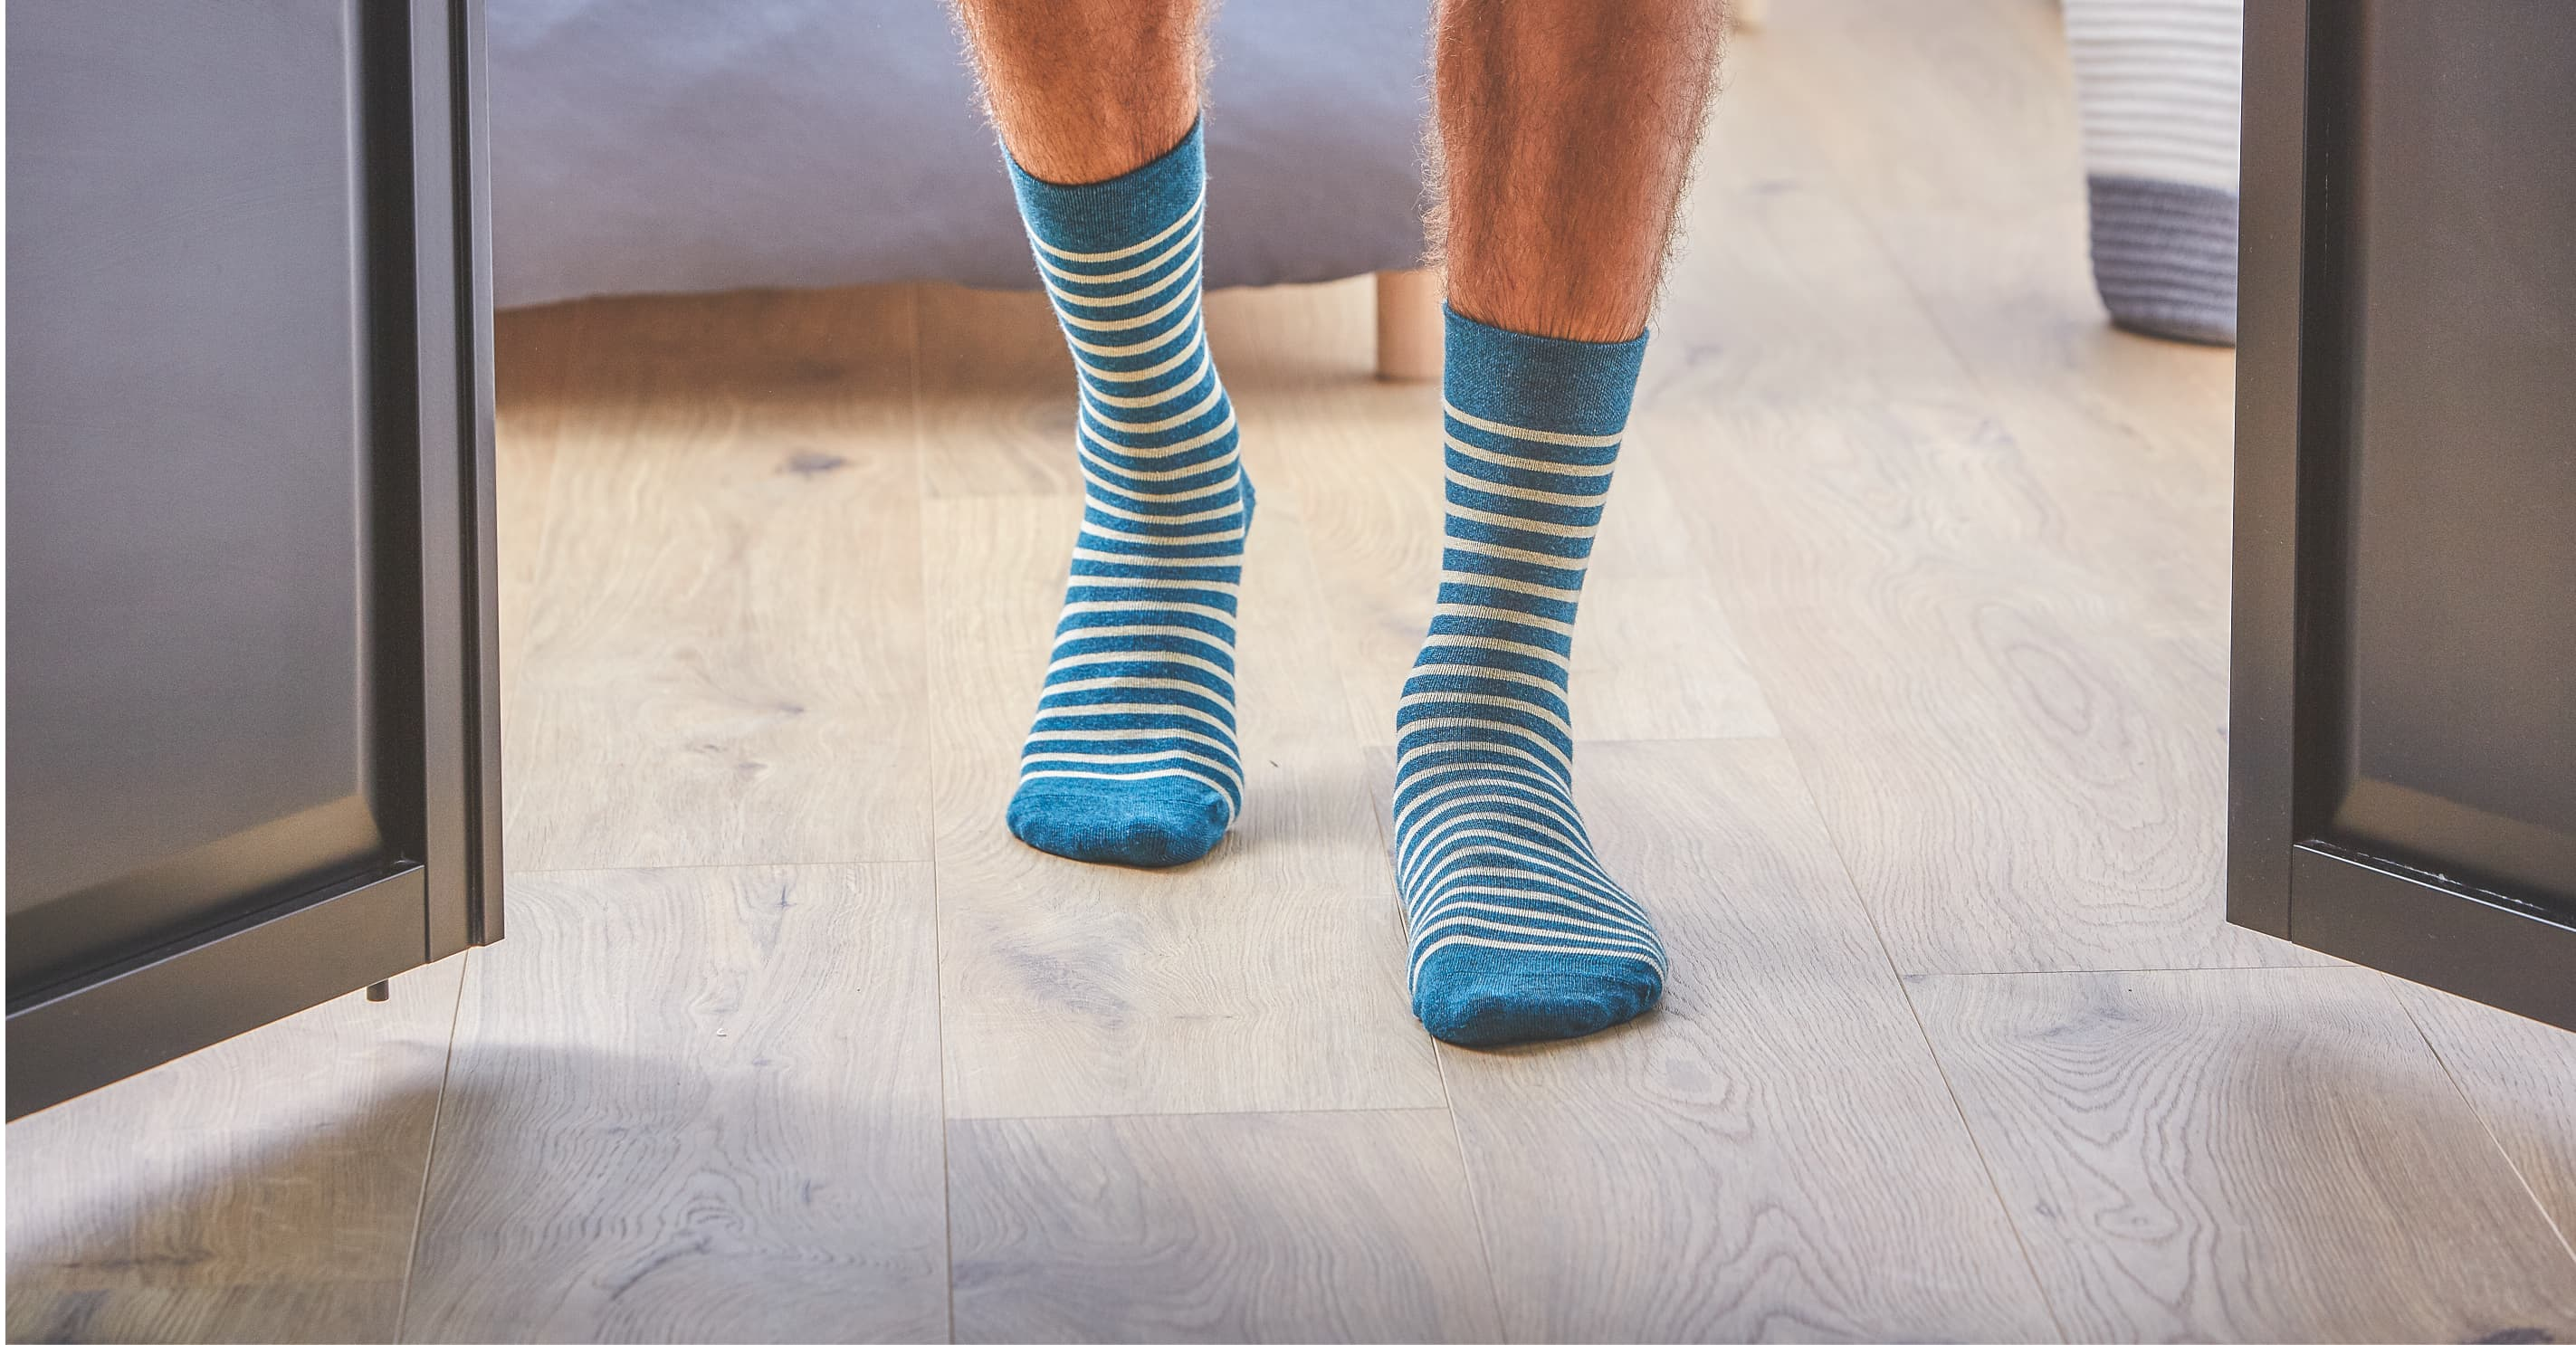 Men's fancy socks can be worn in all seasons. They protect your foot inside your shoes, sneakers or sneakers. The collection of fancy socks features refined designs in subtle colours that combine perfectly with most shoes in fashion today. Made from natural materials, 100% combed cotton, the men's socks are of a quality that is rare on the market. BILLYBELT selects the long cotton fibres to avoid pilling in the long term, and each sock is hand-knitted. The luxury houses usually use this refined methods. This method consists of sewing stitch by stitch so that the seams are imperceptible to the touch.